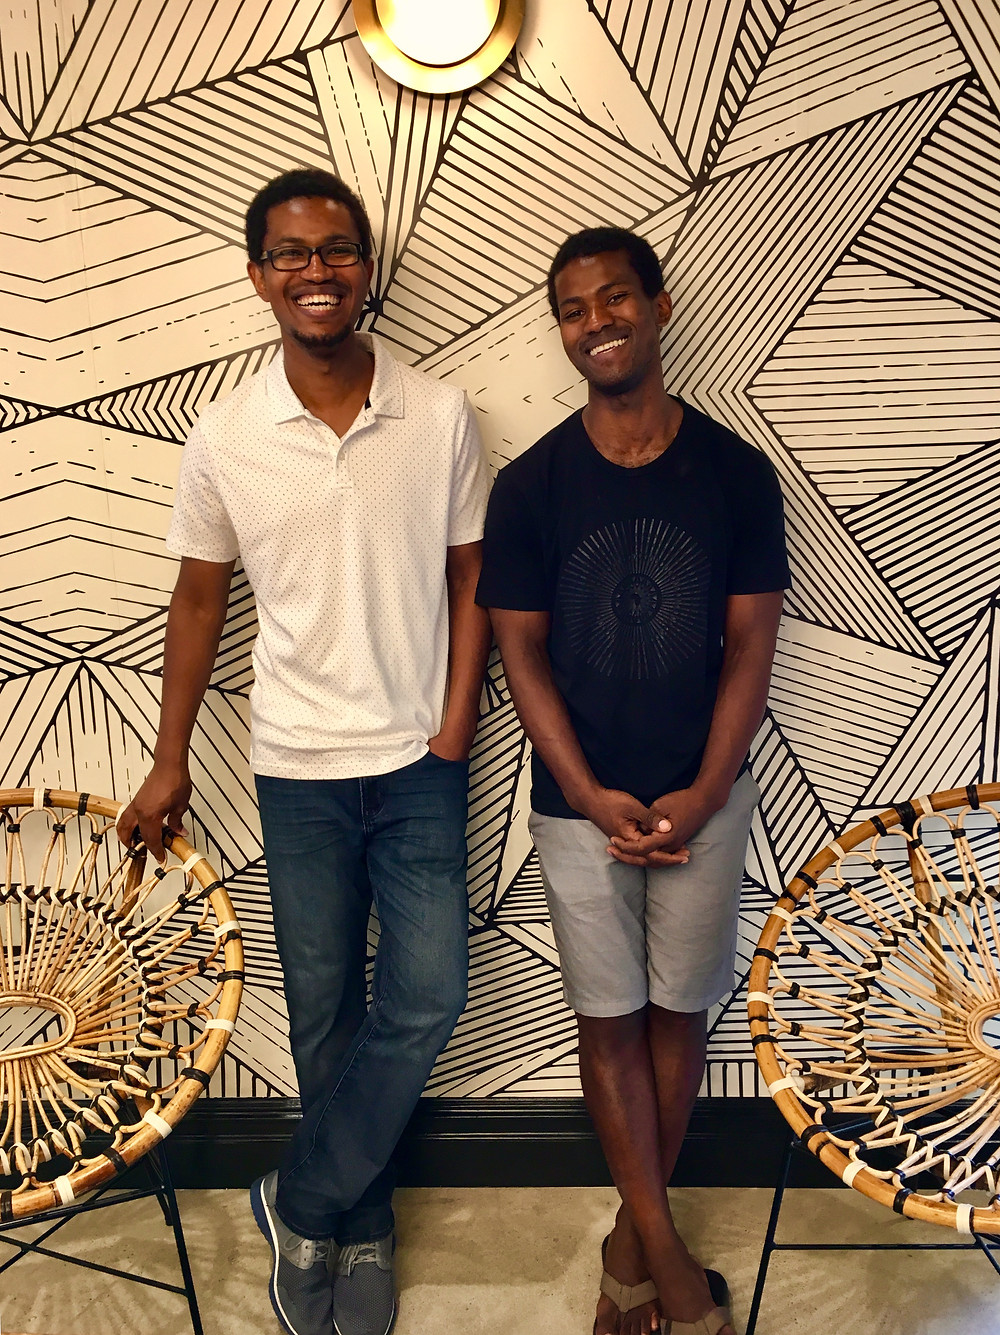 East Harlem's Ginjan Cafe was opened by Guinean-born brothers Mohammed and Rahim Diallo